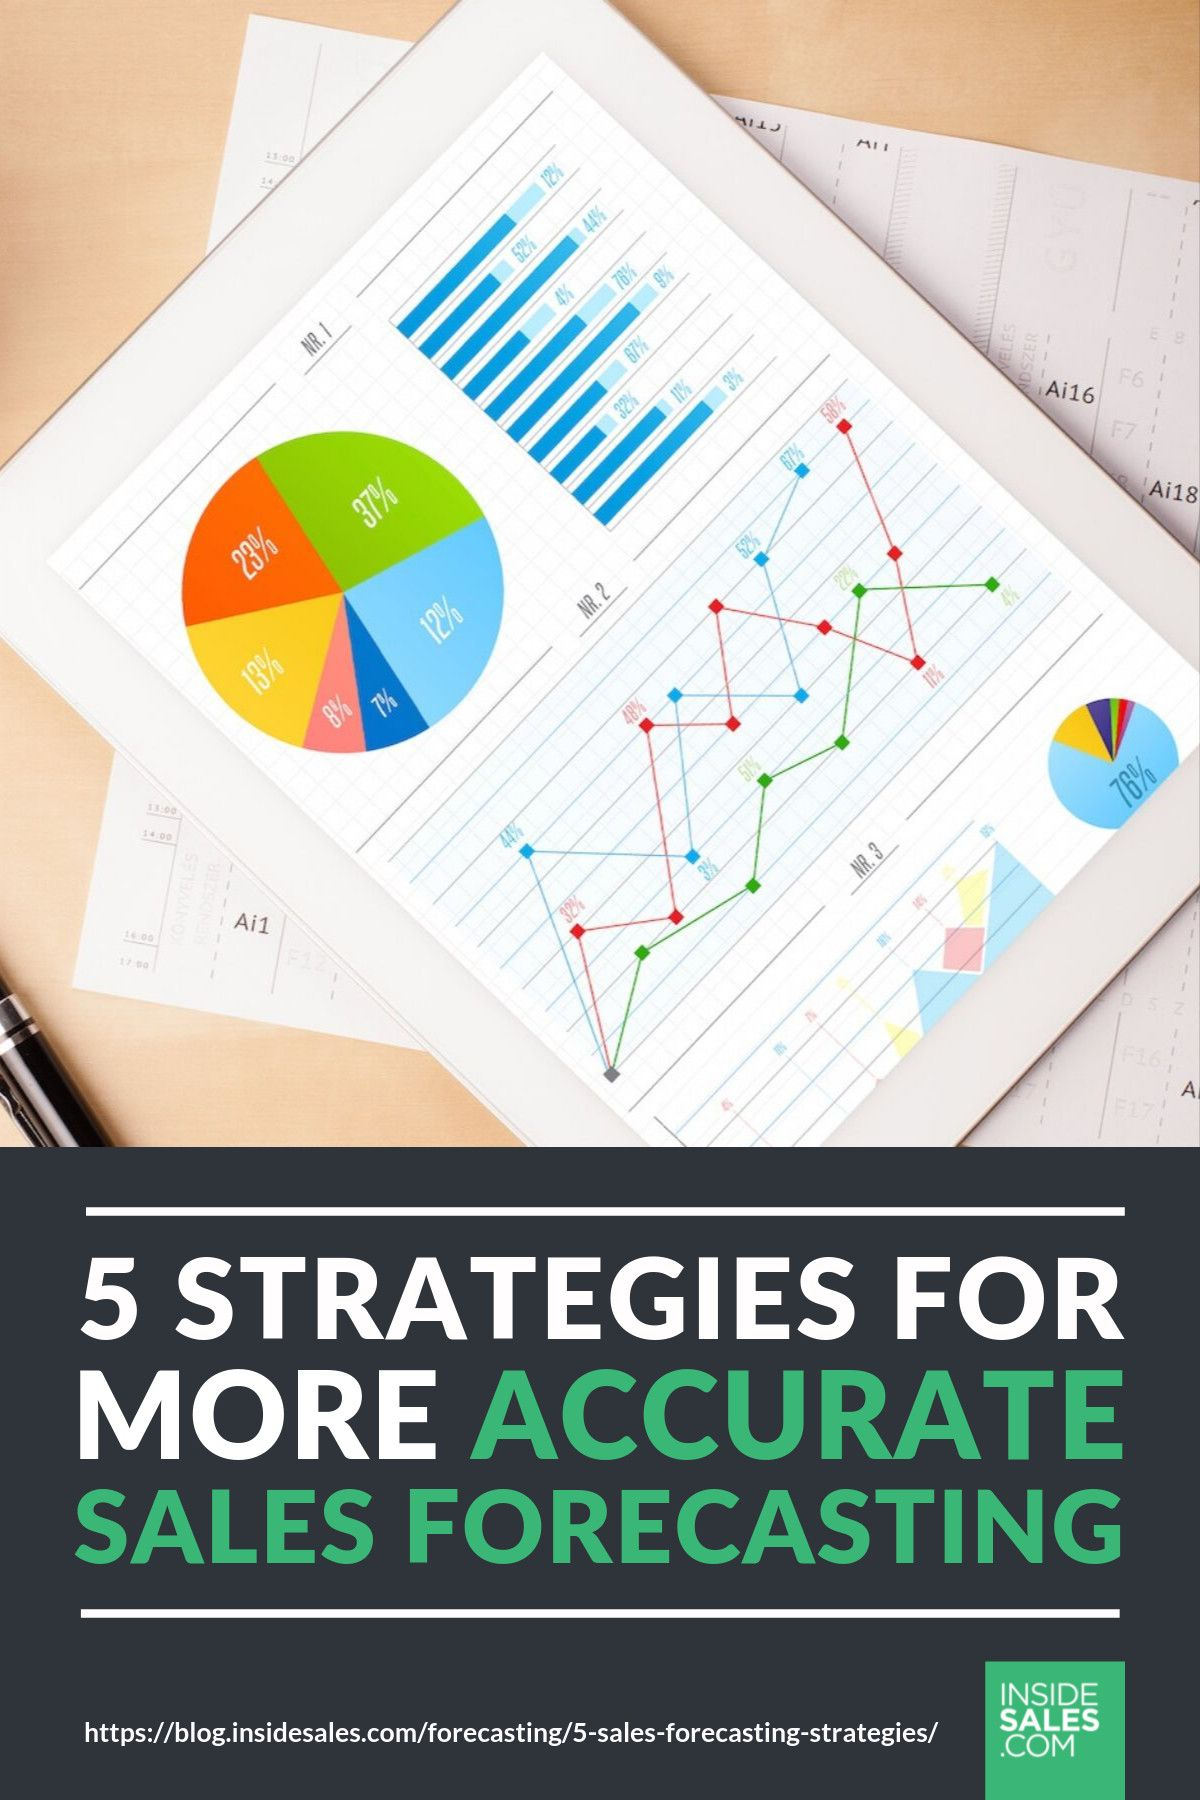 6 Forecasting Strategies For More Accurate Sales